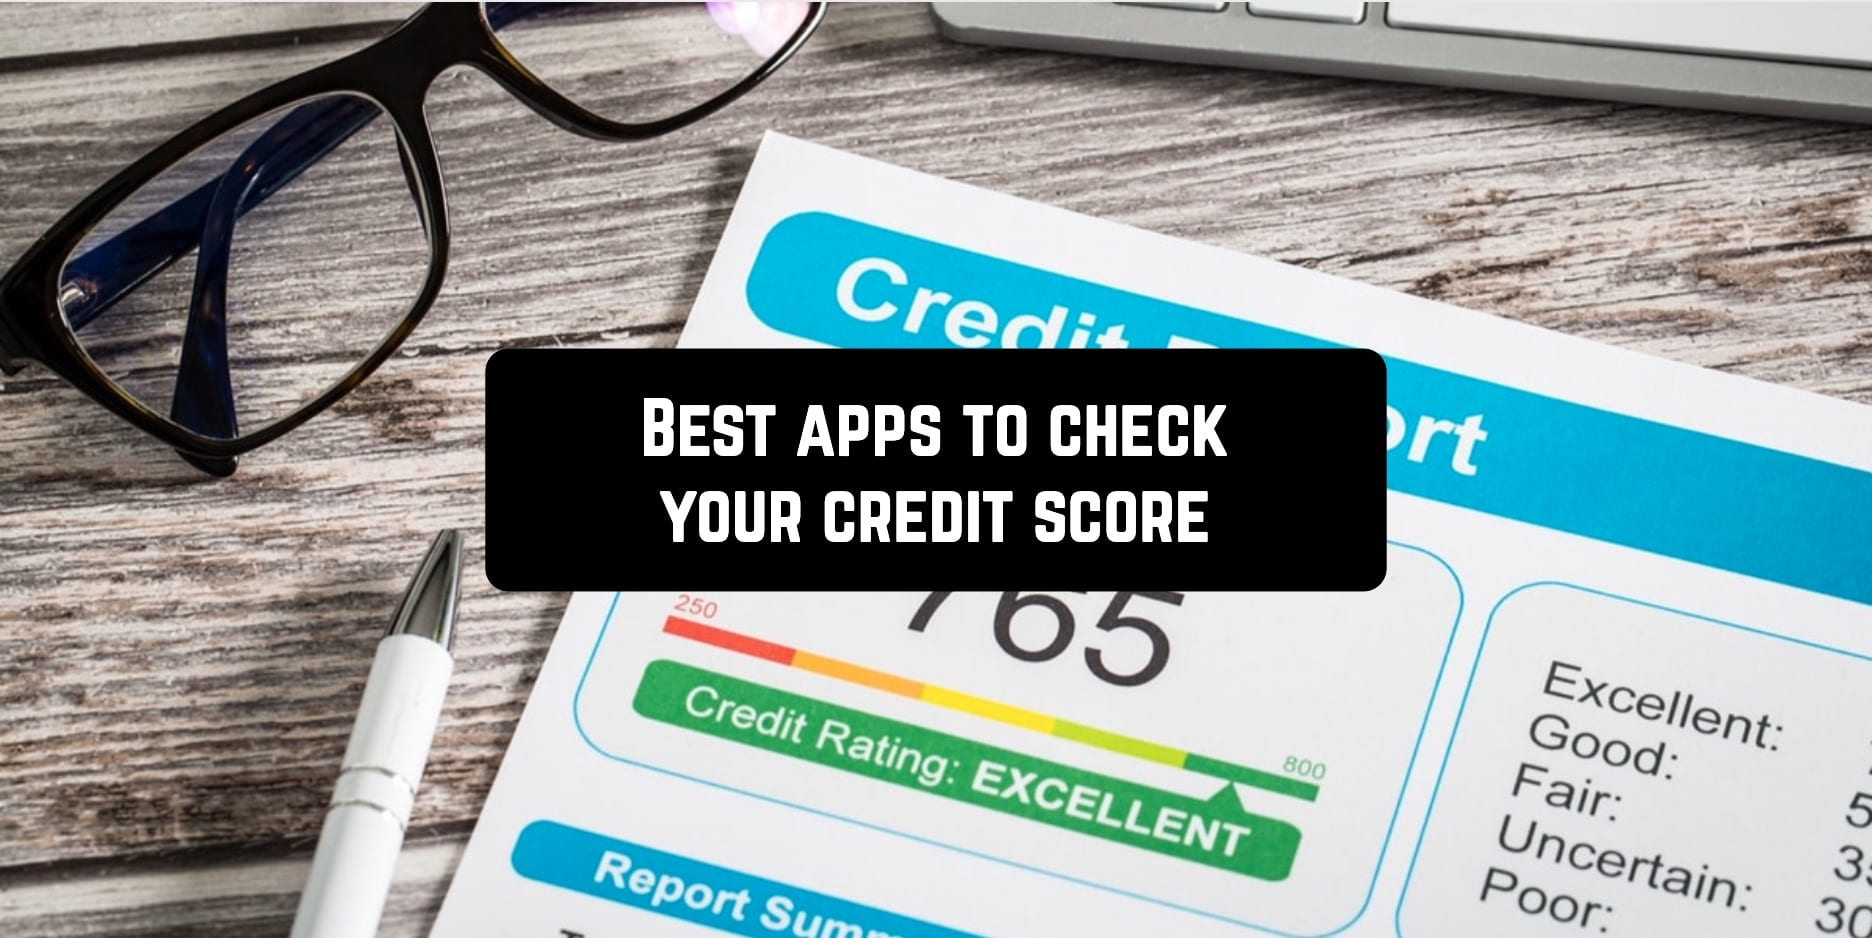 Best apps to check your credit score